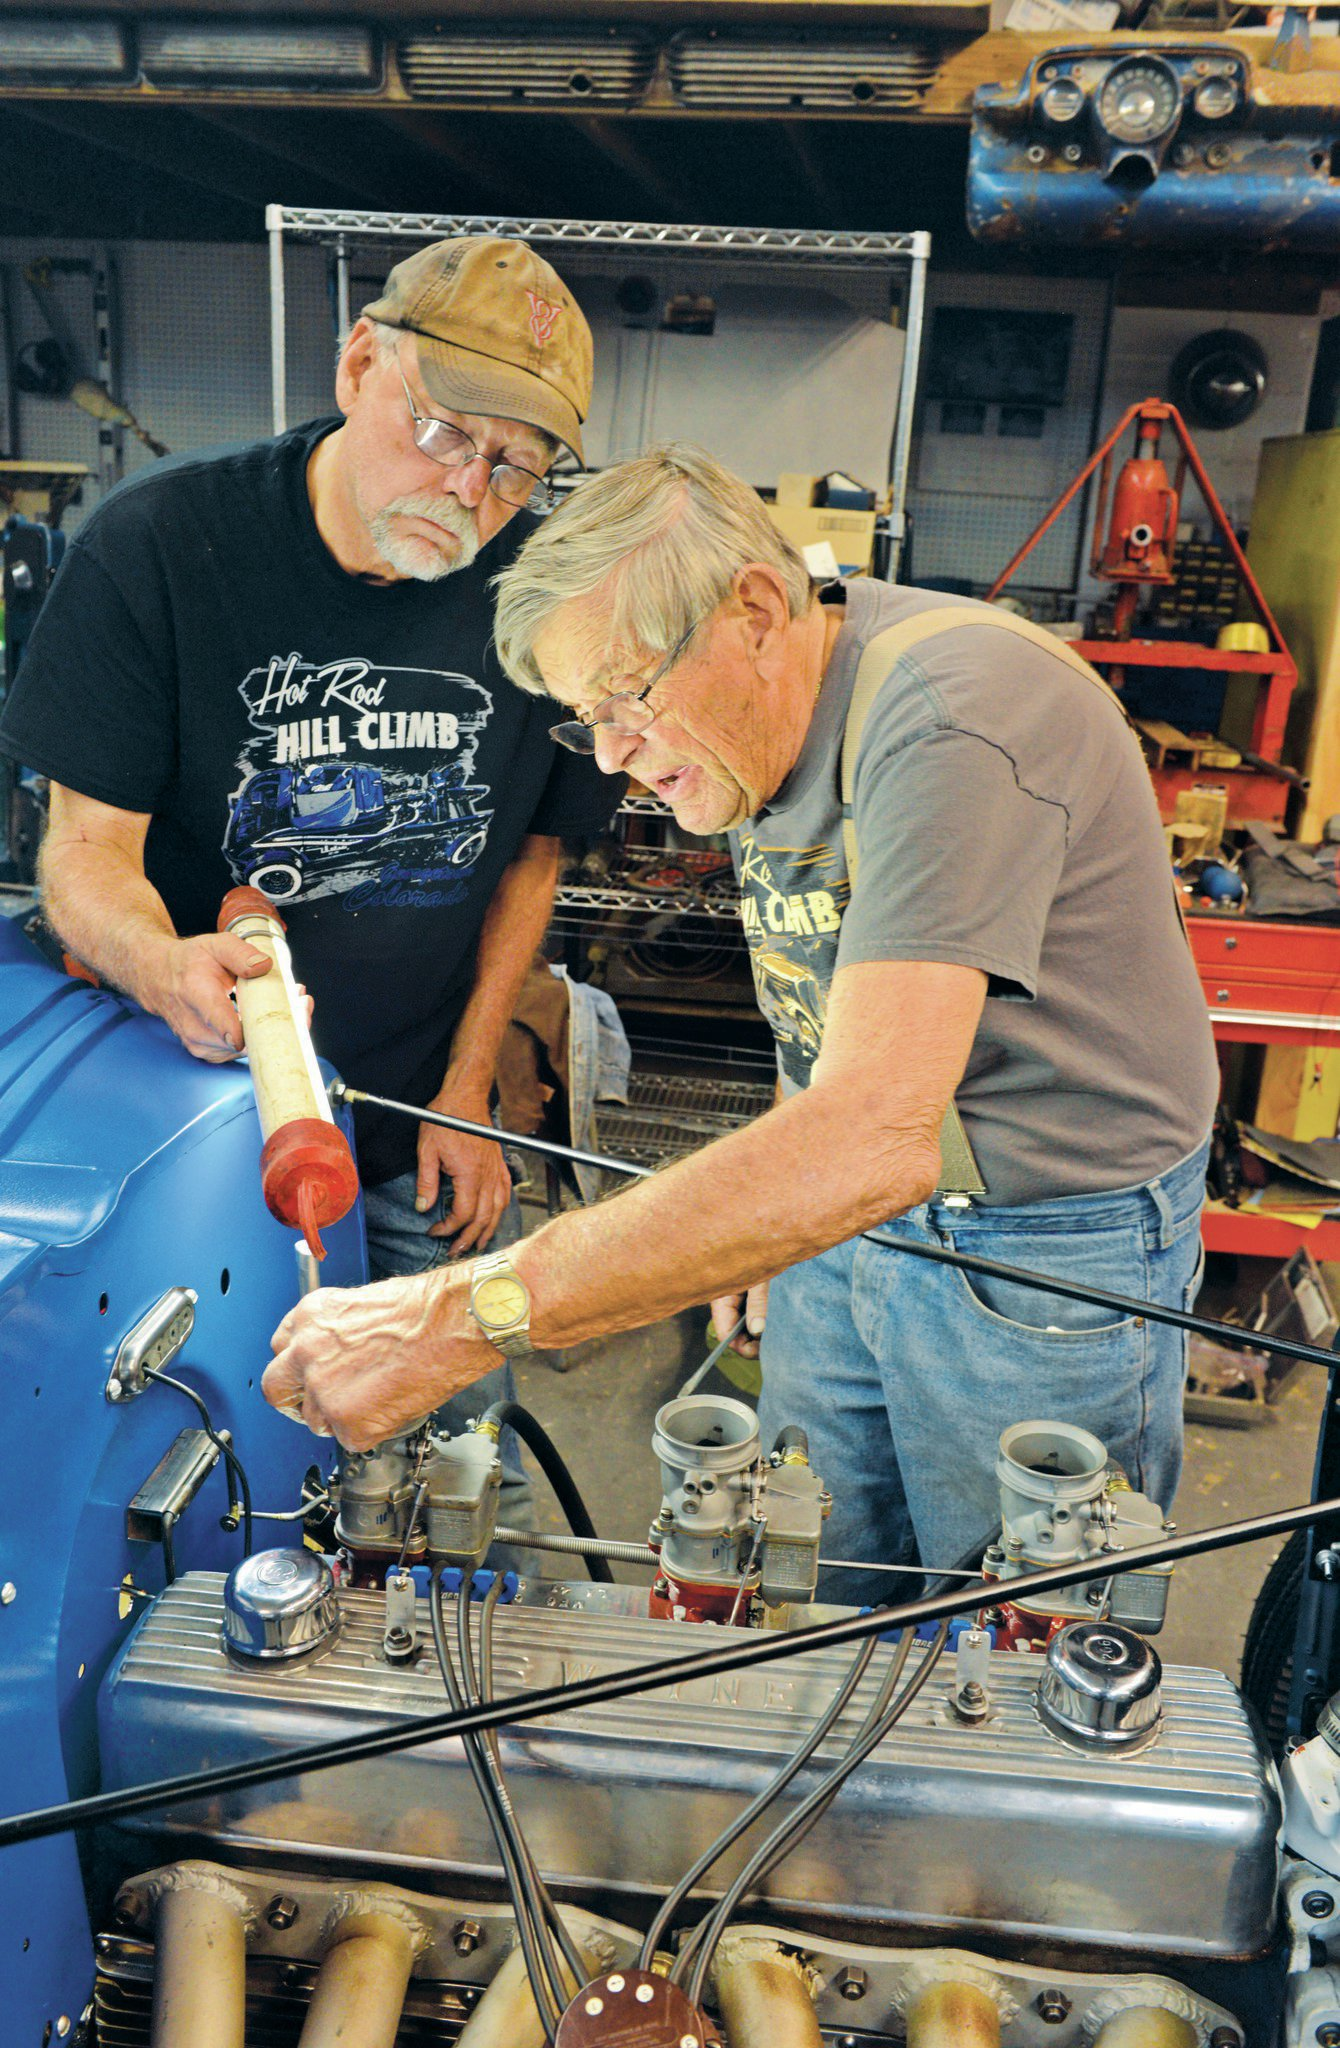 At 85 years young, Cal Kennedy is still smitten with hot rodding. When needed, he doesn't mind calling on his nearly 70 years of experience with race cars to help out on a build. Here, Cal and local hot rodder Tom Wentworth adjust the carbs on the Wayne six-banger.